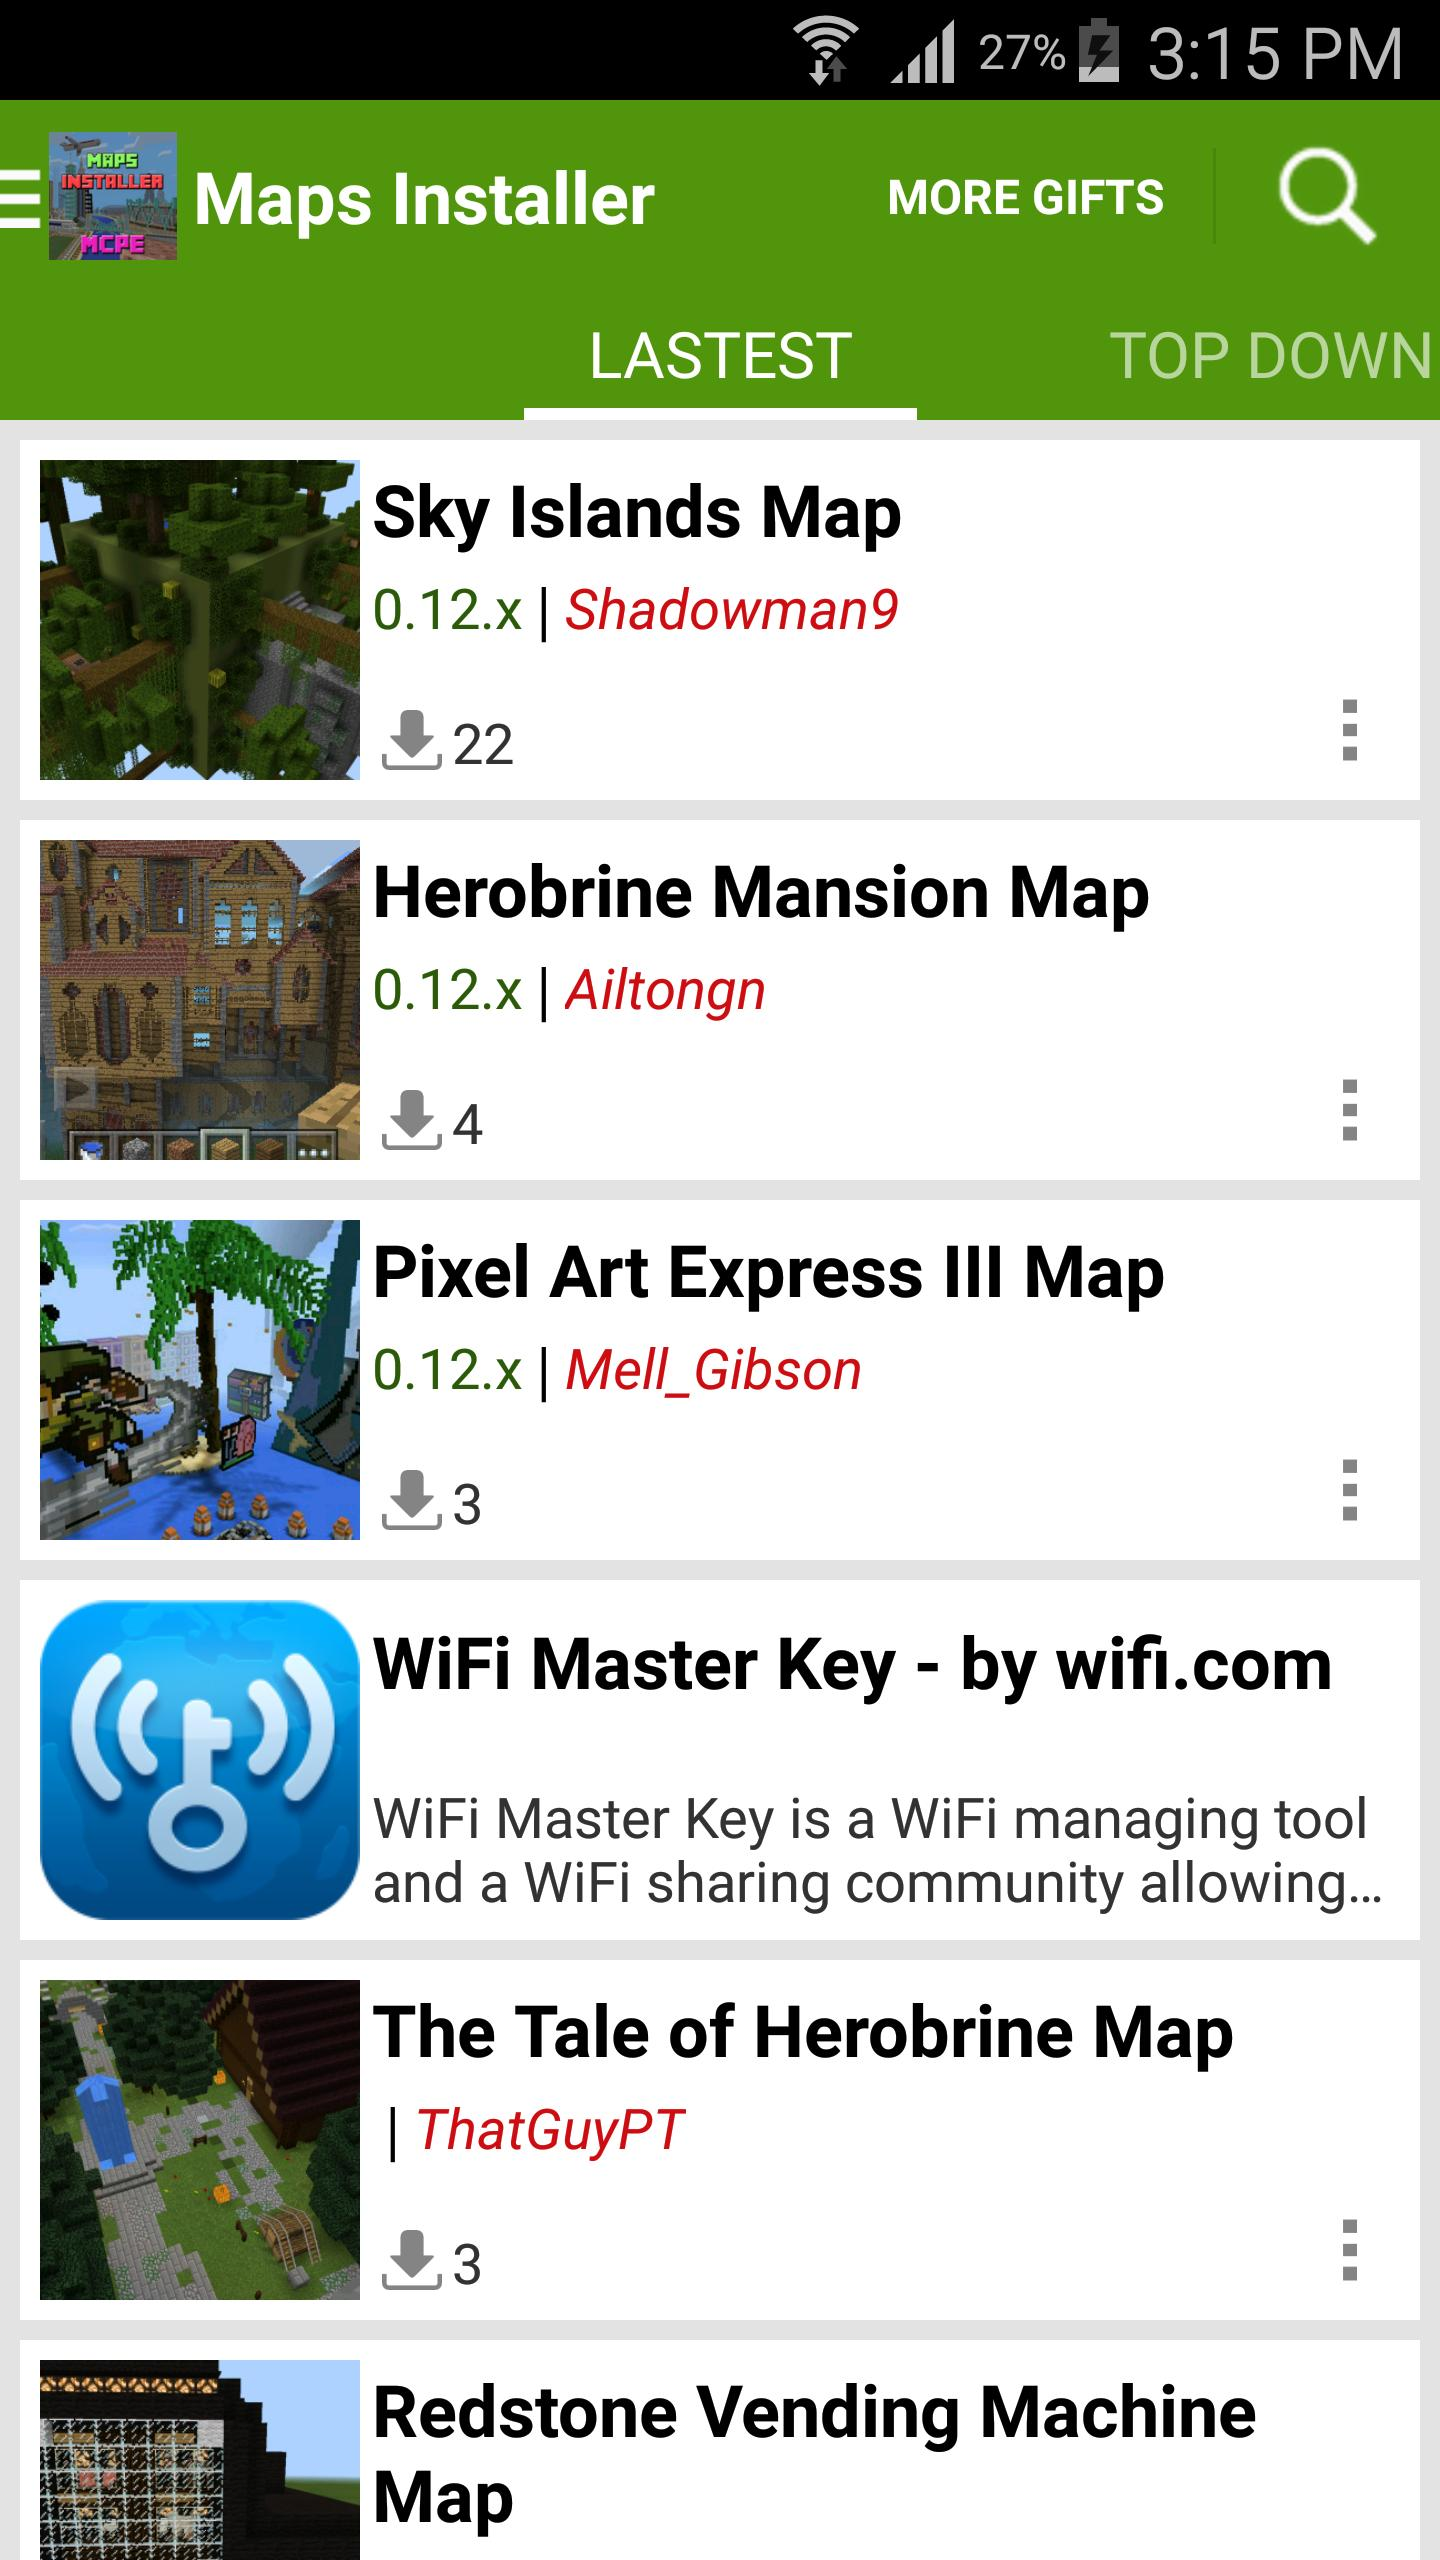 Maps Installer for Android - APK Download on